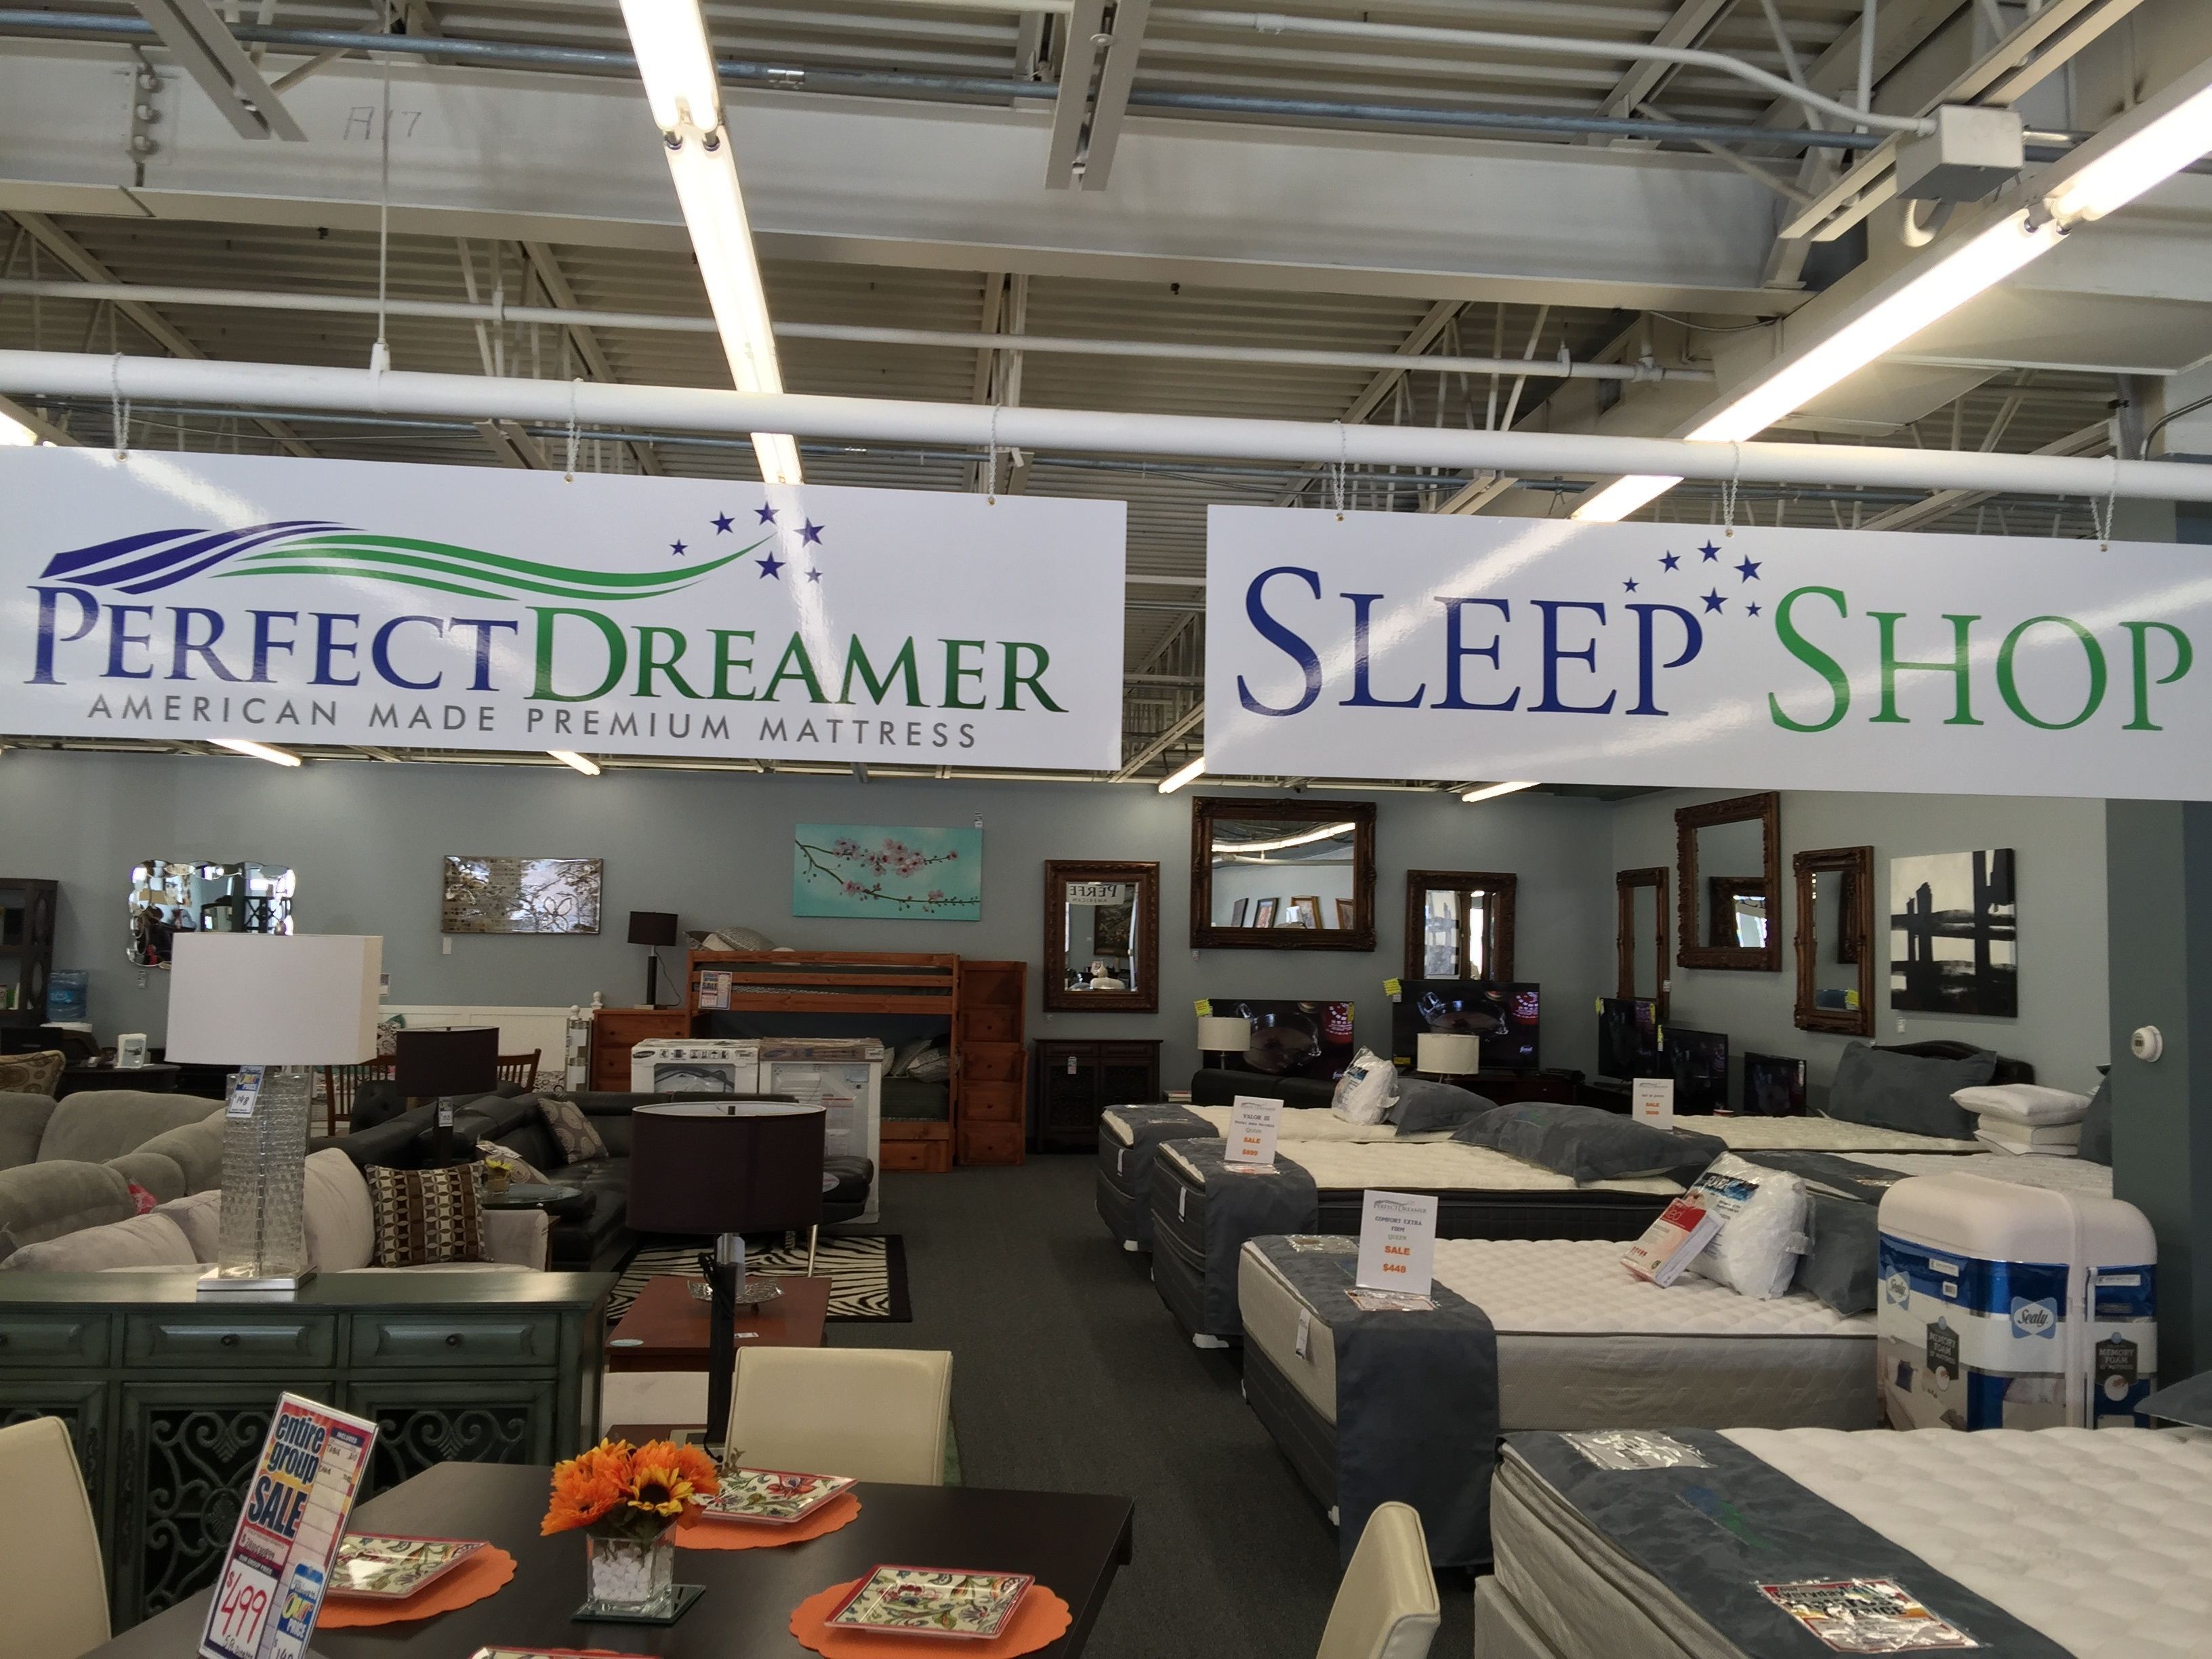 login a contact pages us the store appliances dufresne furniture mattress sealy find